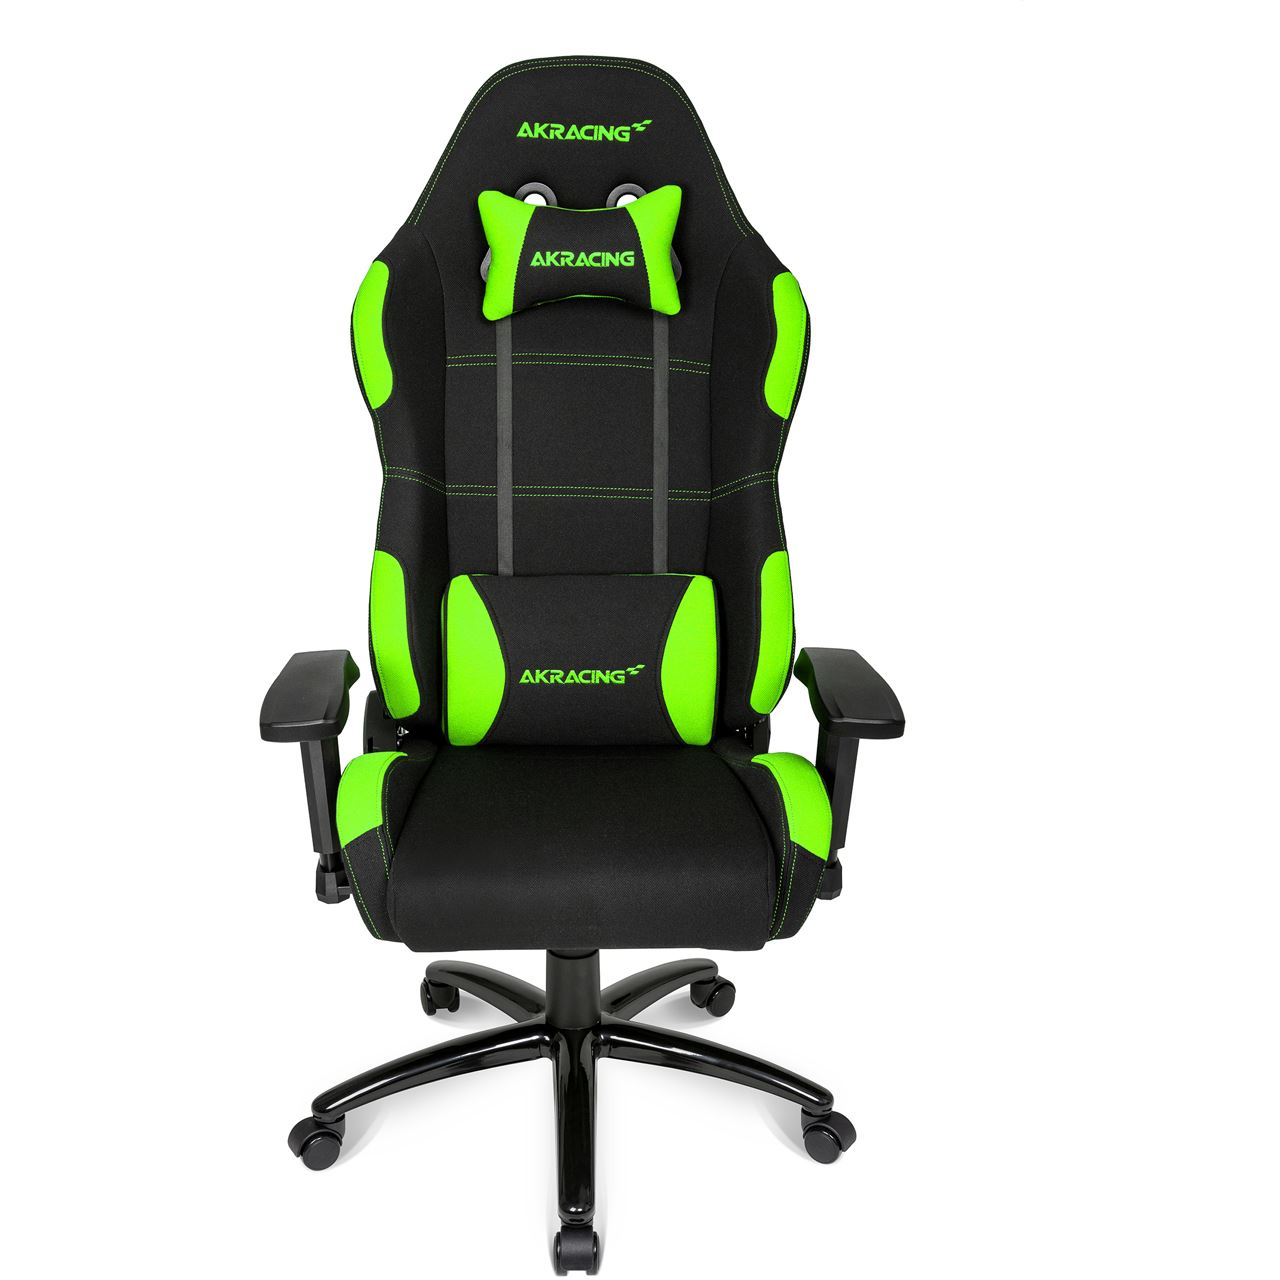 Gaming Sessel Netzteil Akracing Gaming Chair Schwarz Grün Gaming Seats Vibuonline